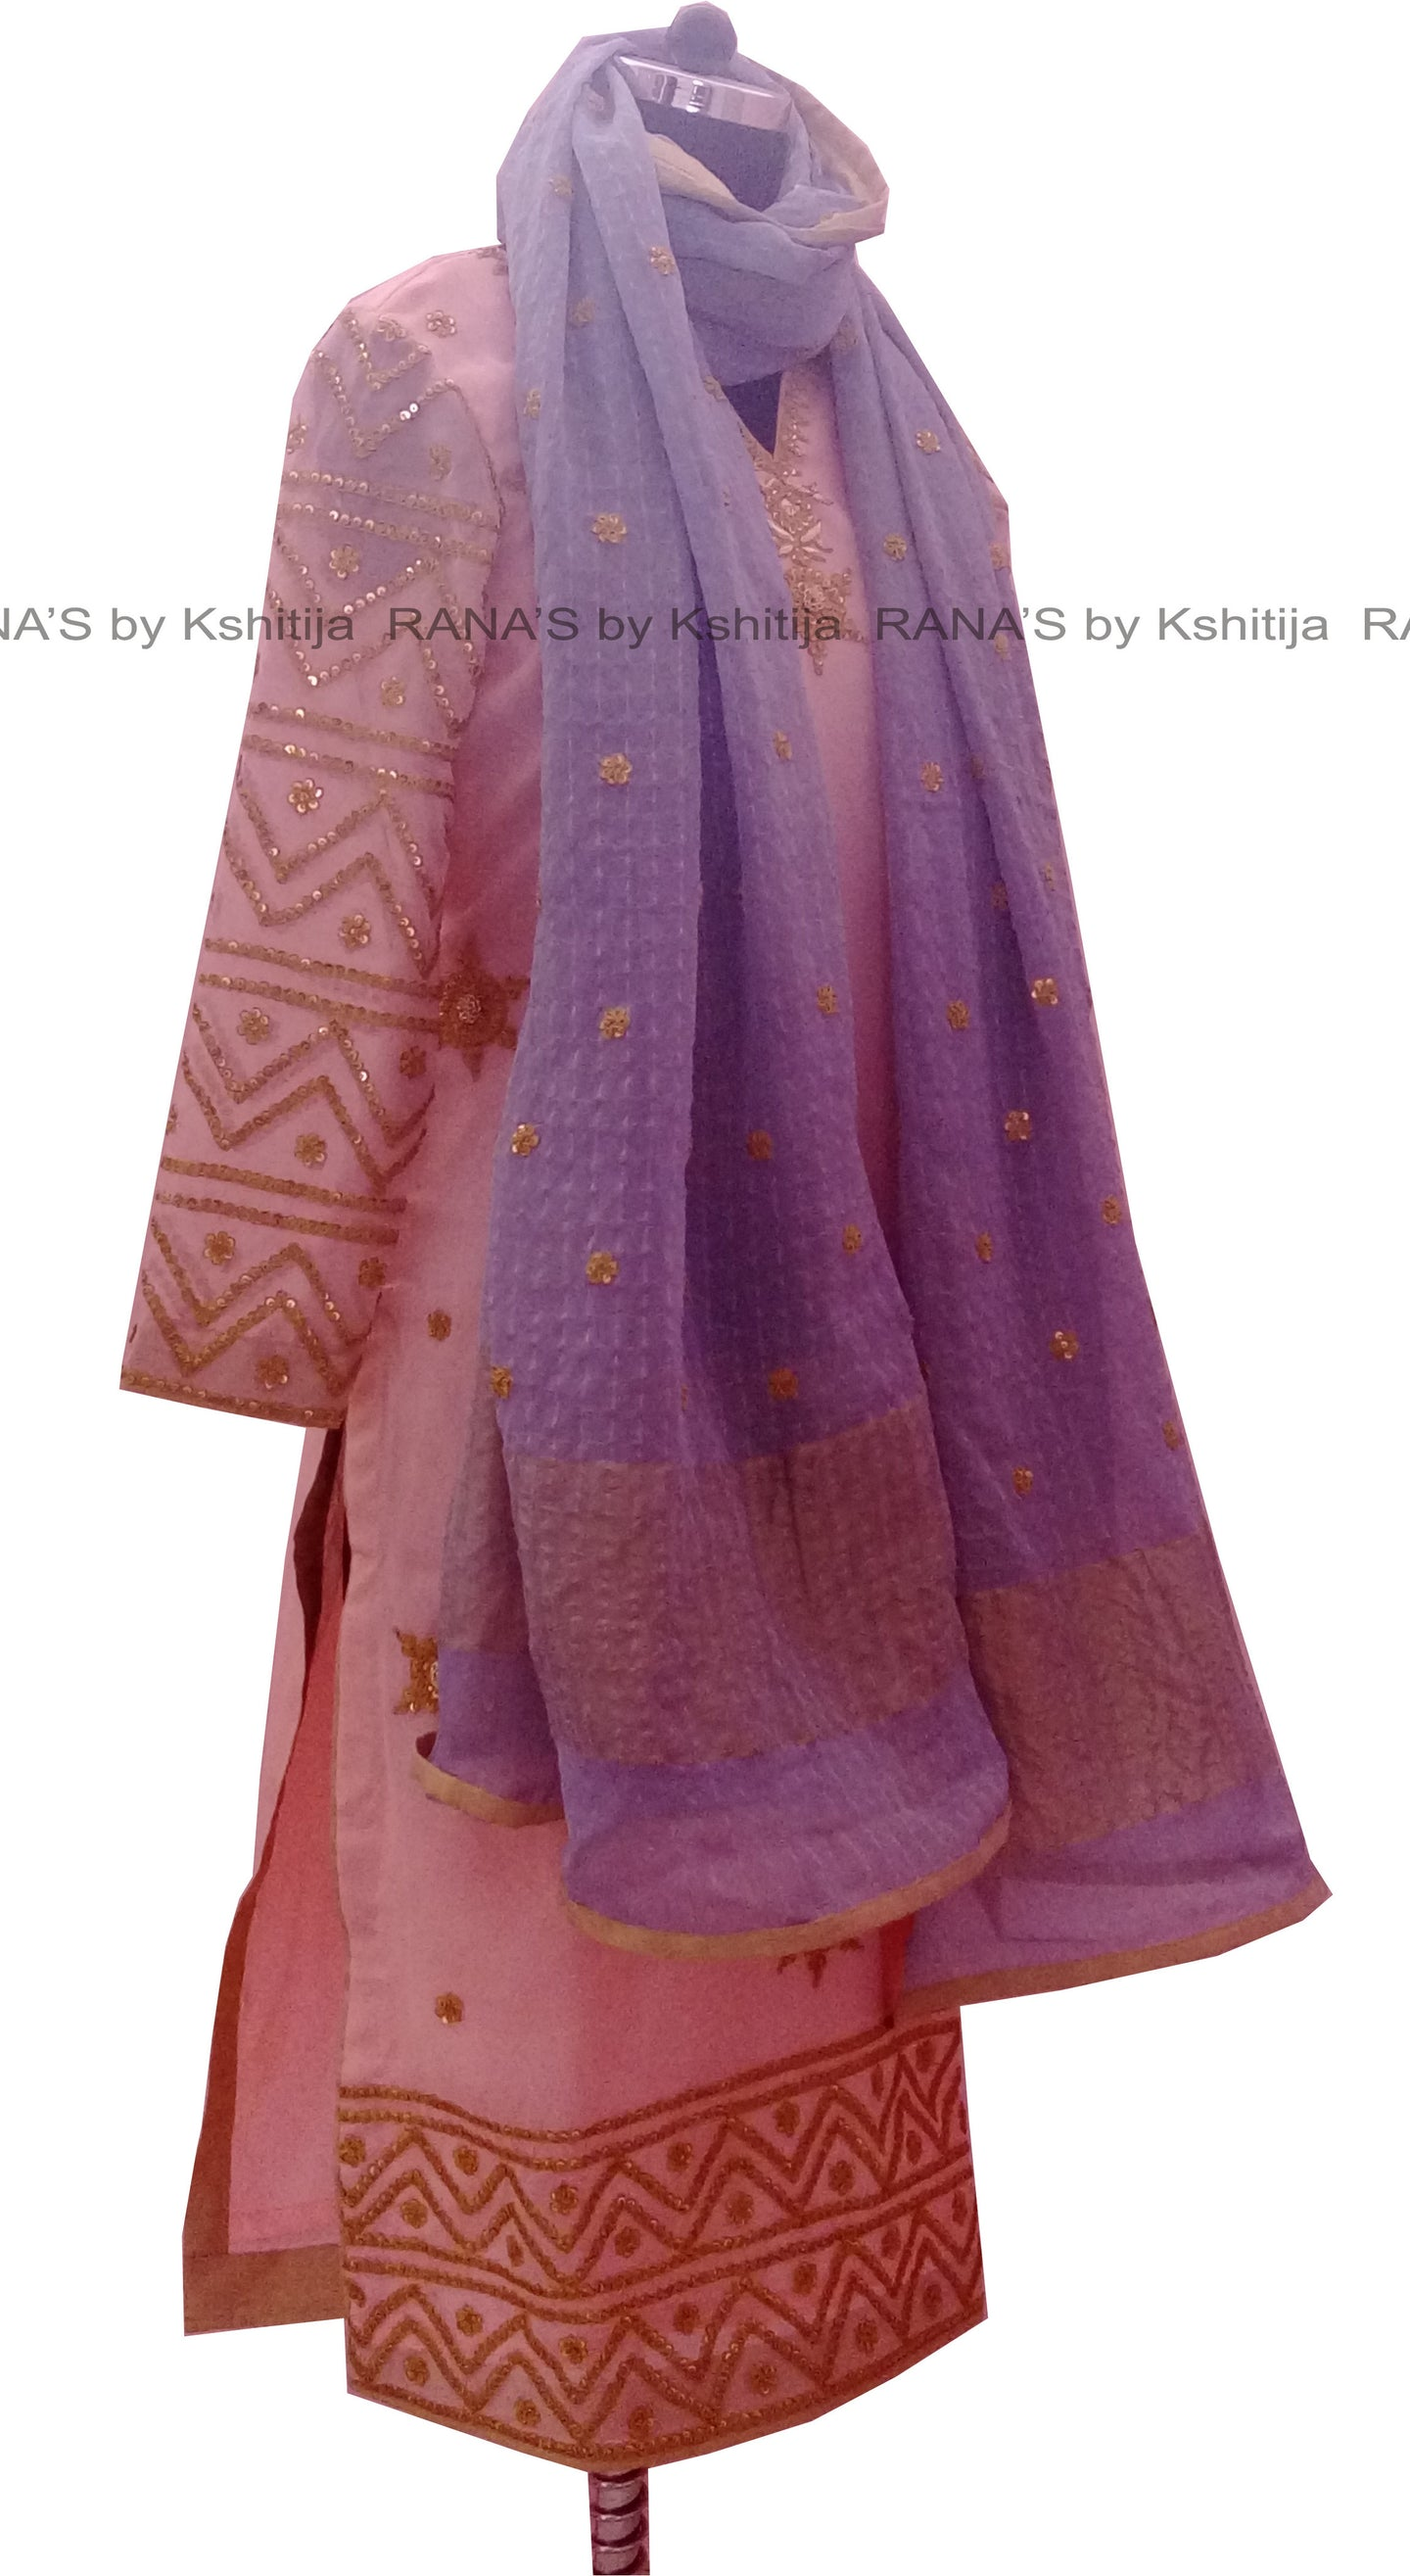 ranas-by-kshitija-pink-grey-marodi-work-salwar-suit